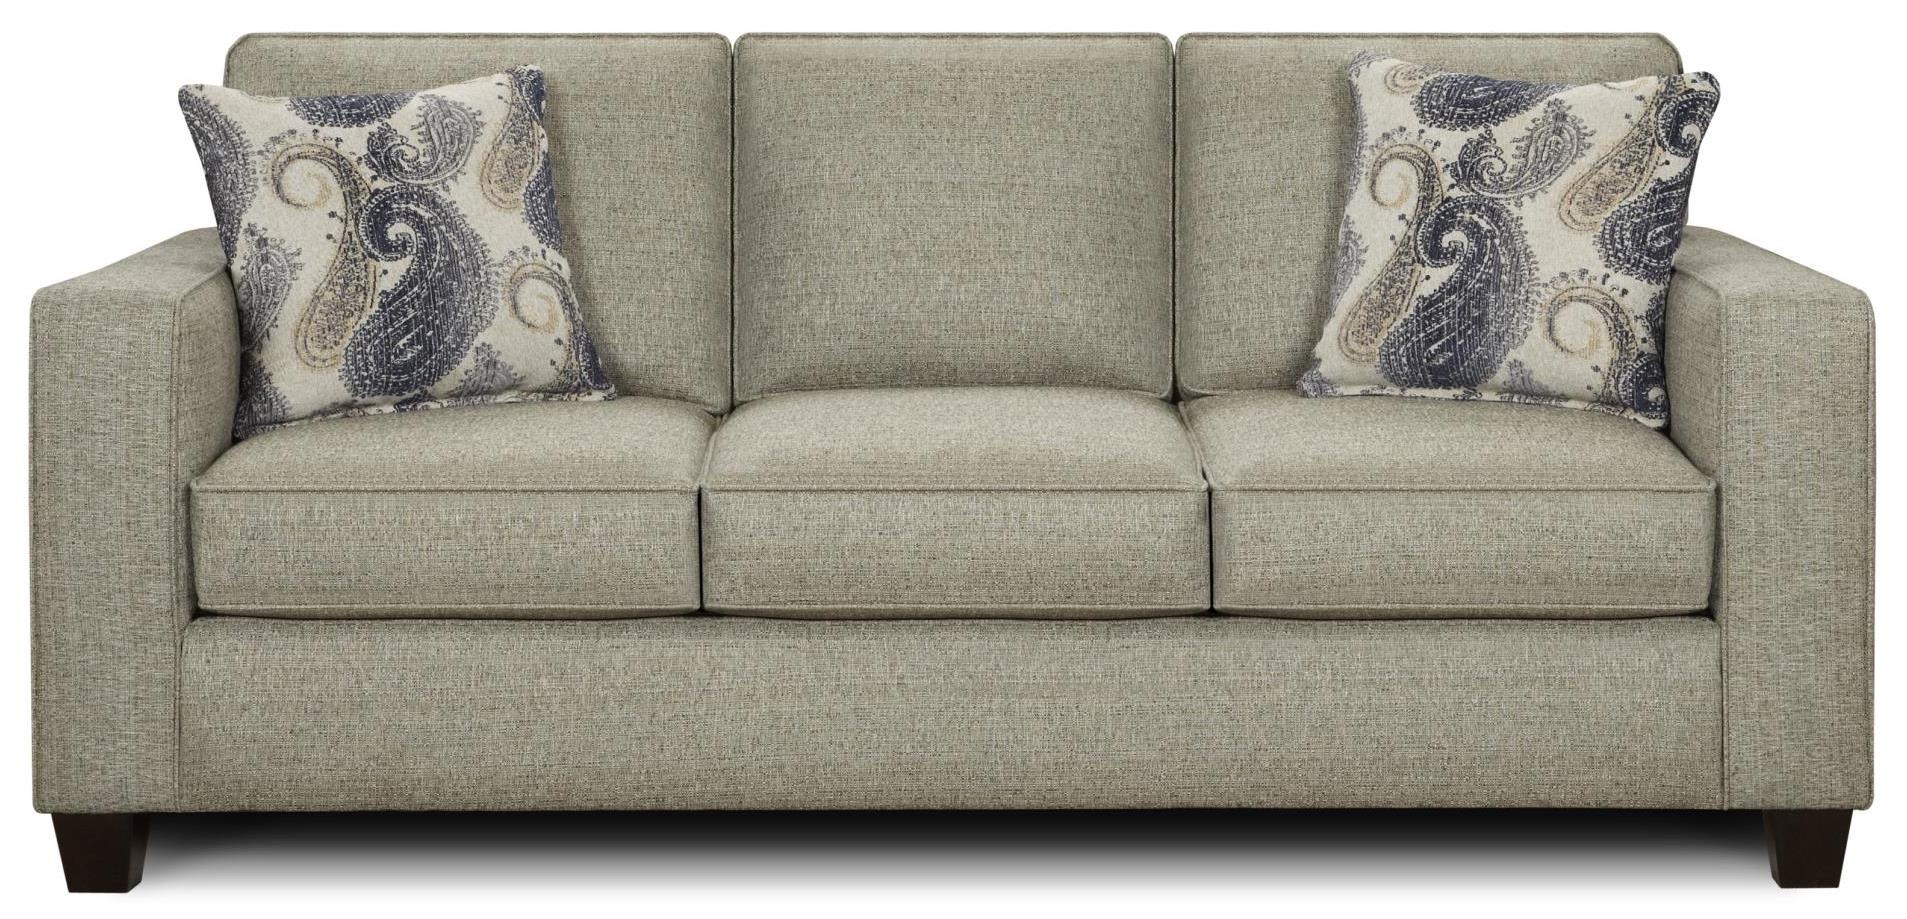 Fusion Furniture 3560 Sofa - Item Number: 3560Vibrant Smoke